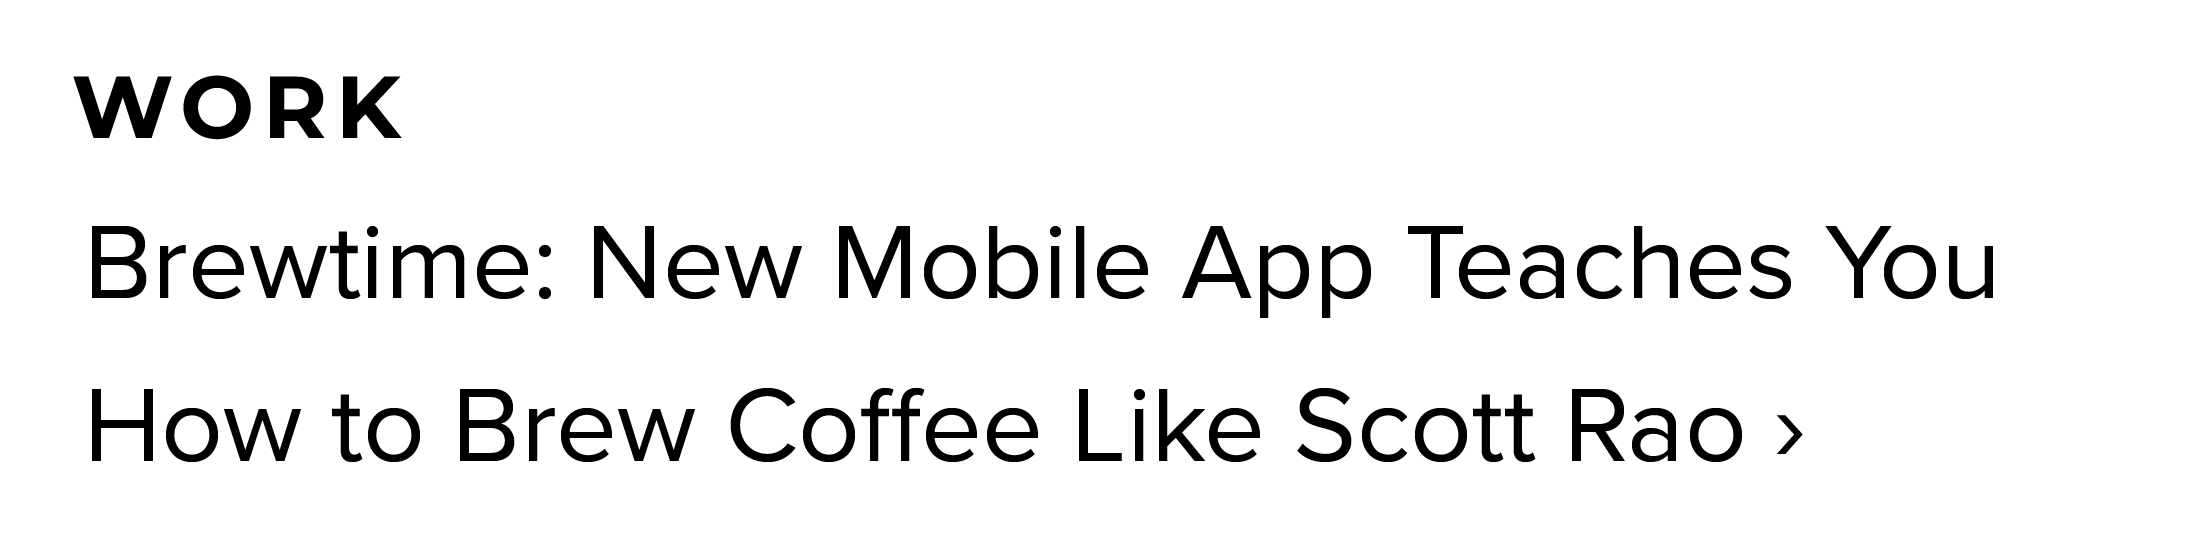 brewtime-new-mobile-app-teaches-you-how-to-brew-coffee-like-scott-rao.png